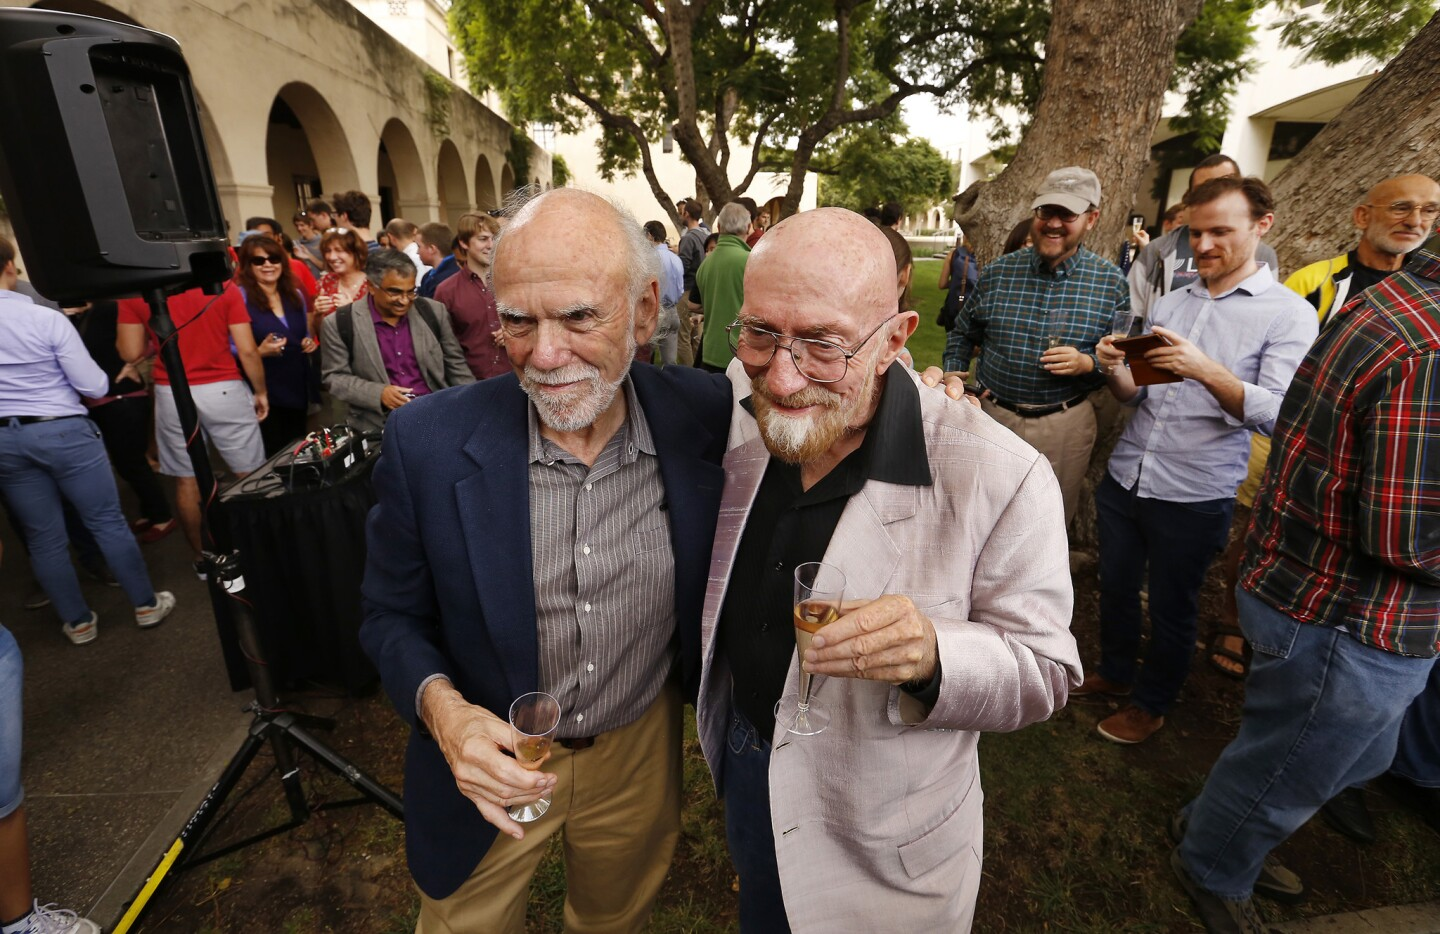 Caltech physicists Barry Barish, left, and Kip Thorne celebrate their Nobel Prize in physics for the LIGO experiment at a party at the Pasadena university.